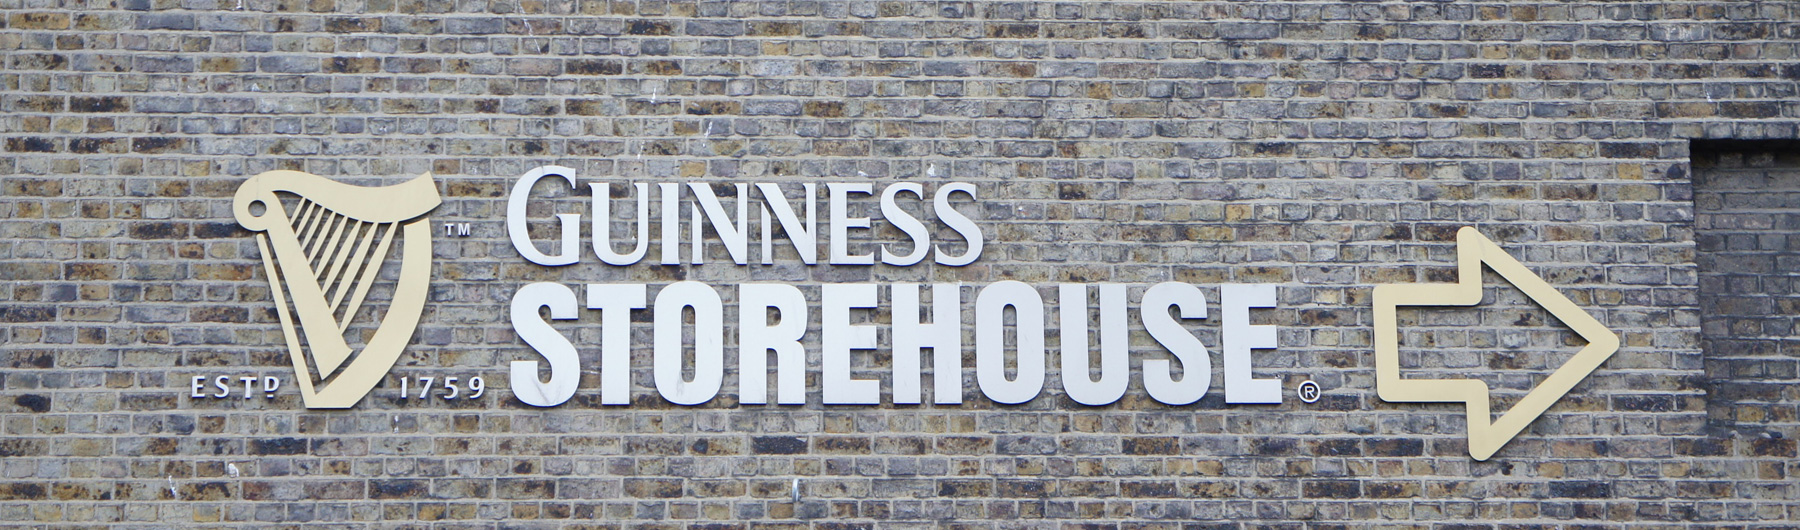 Guinness Tour: Exploring the Design Decisions of the Guinness Storehouse